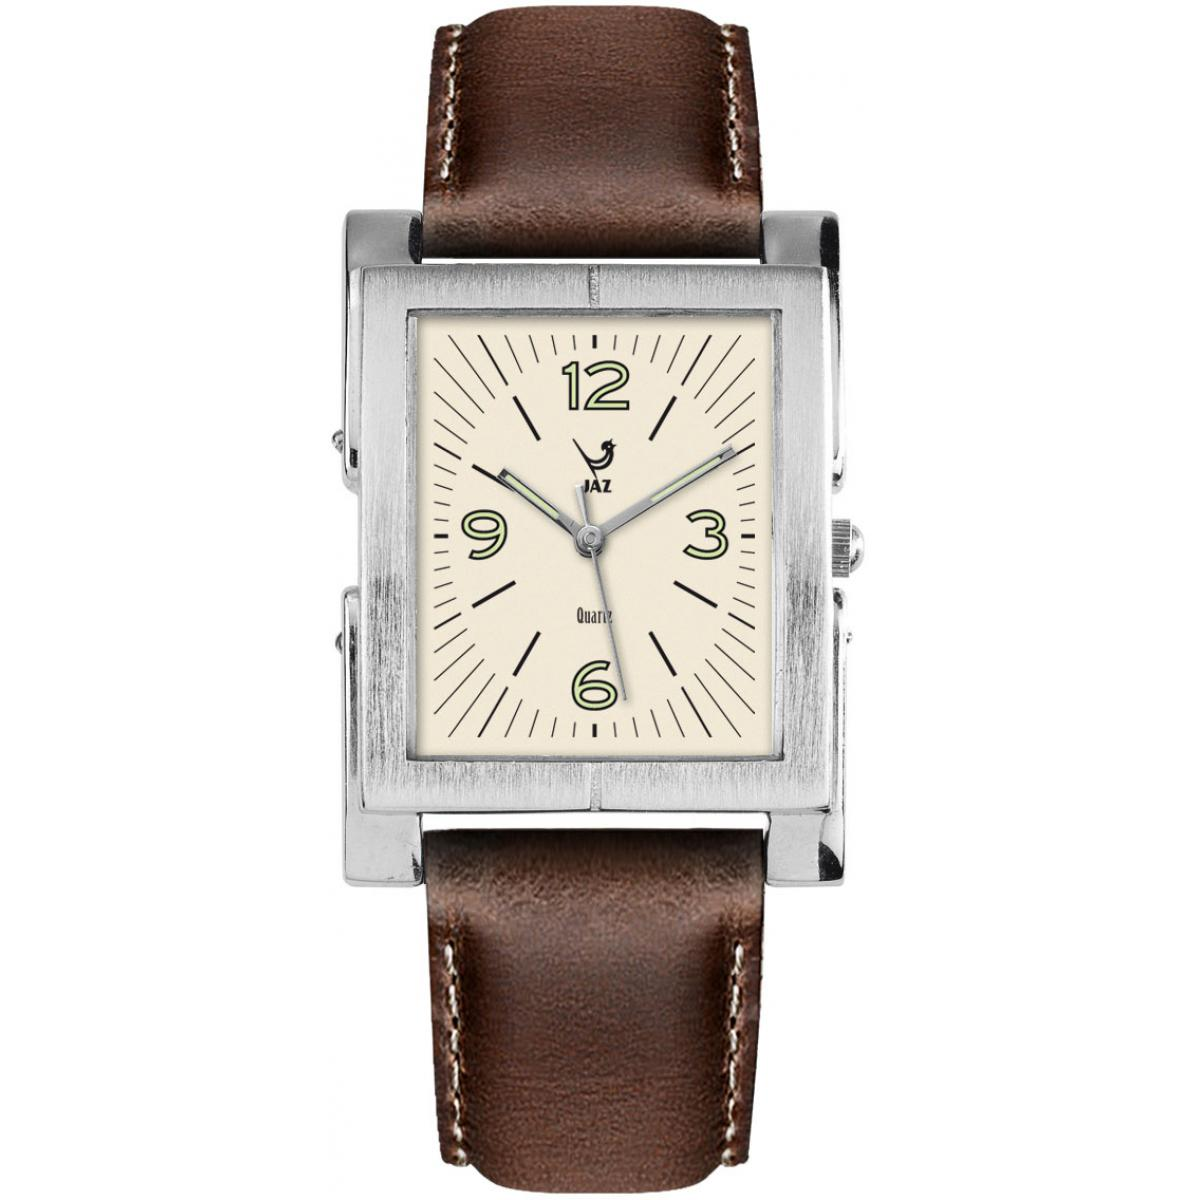 Montre Jaz Esthetic JZ104/3 - Montre Rectangulaire Marron Cuir Homme